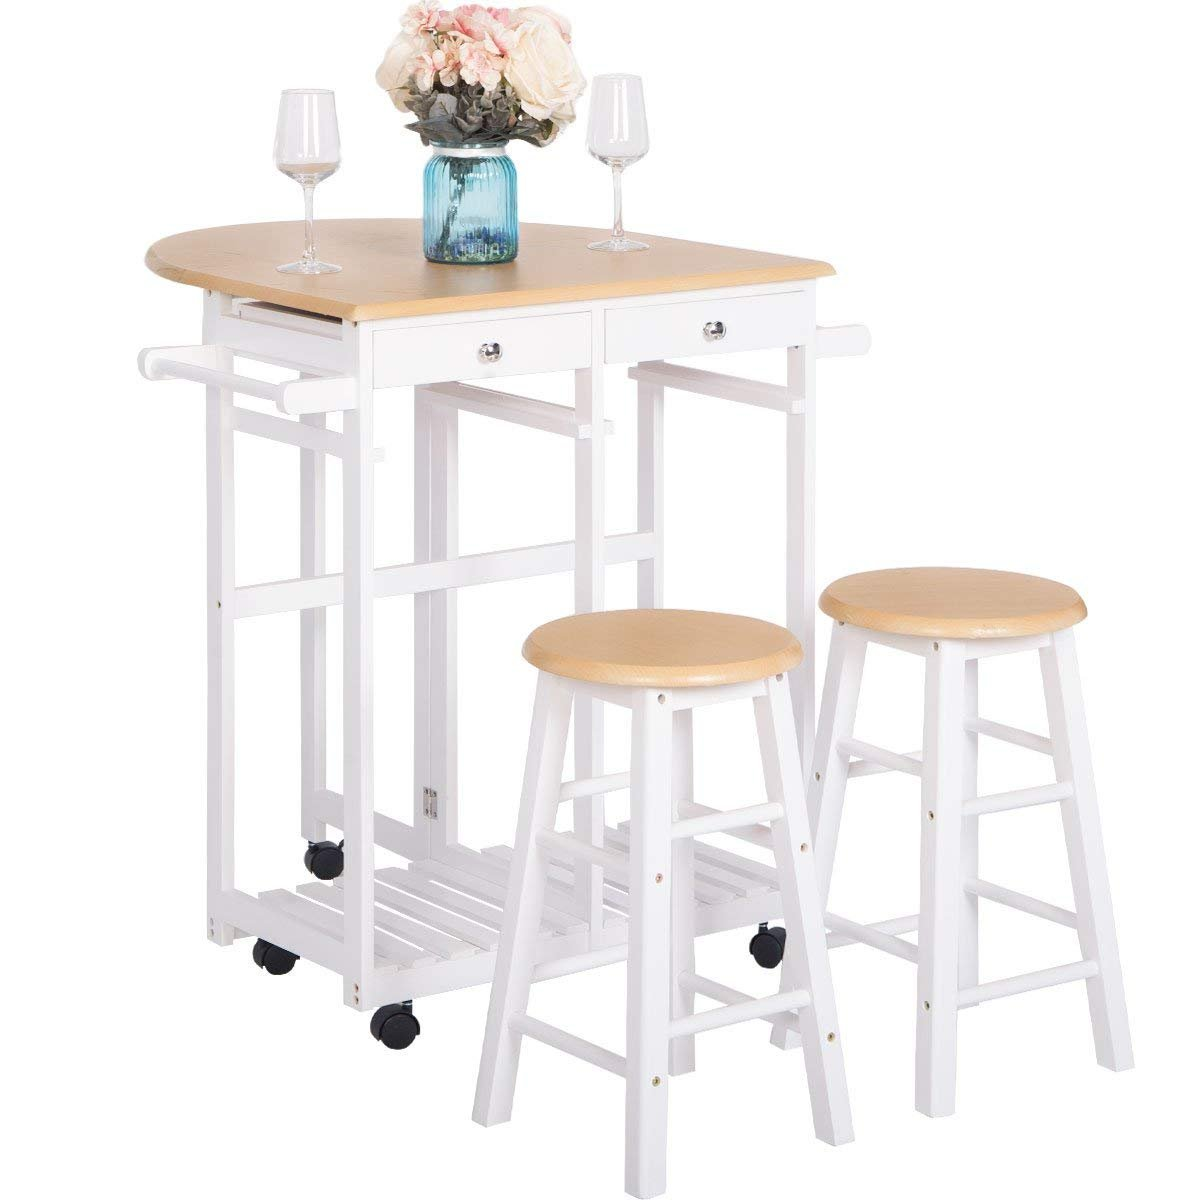 Harper & Bright Designs Kitchen Island Cart Folding Top Drop-Leaf with 2 Stools (White Natural)